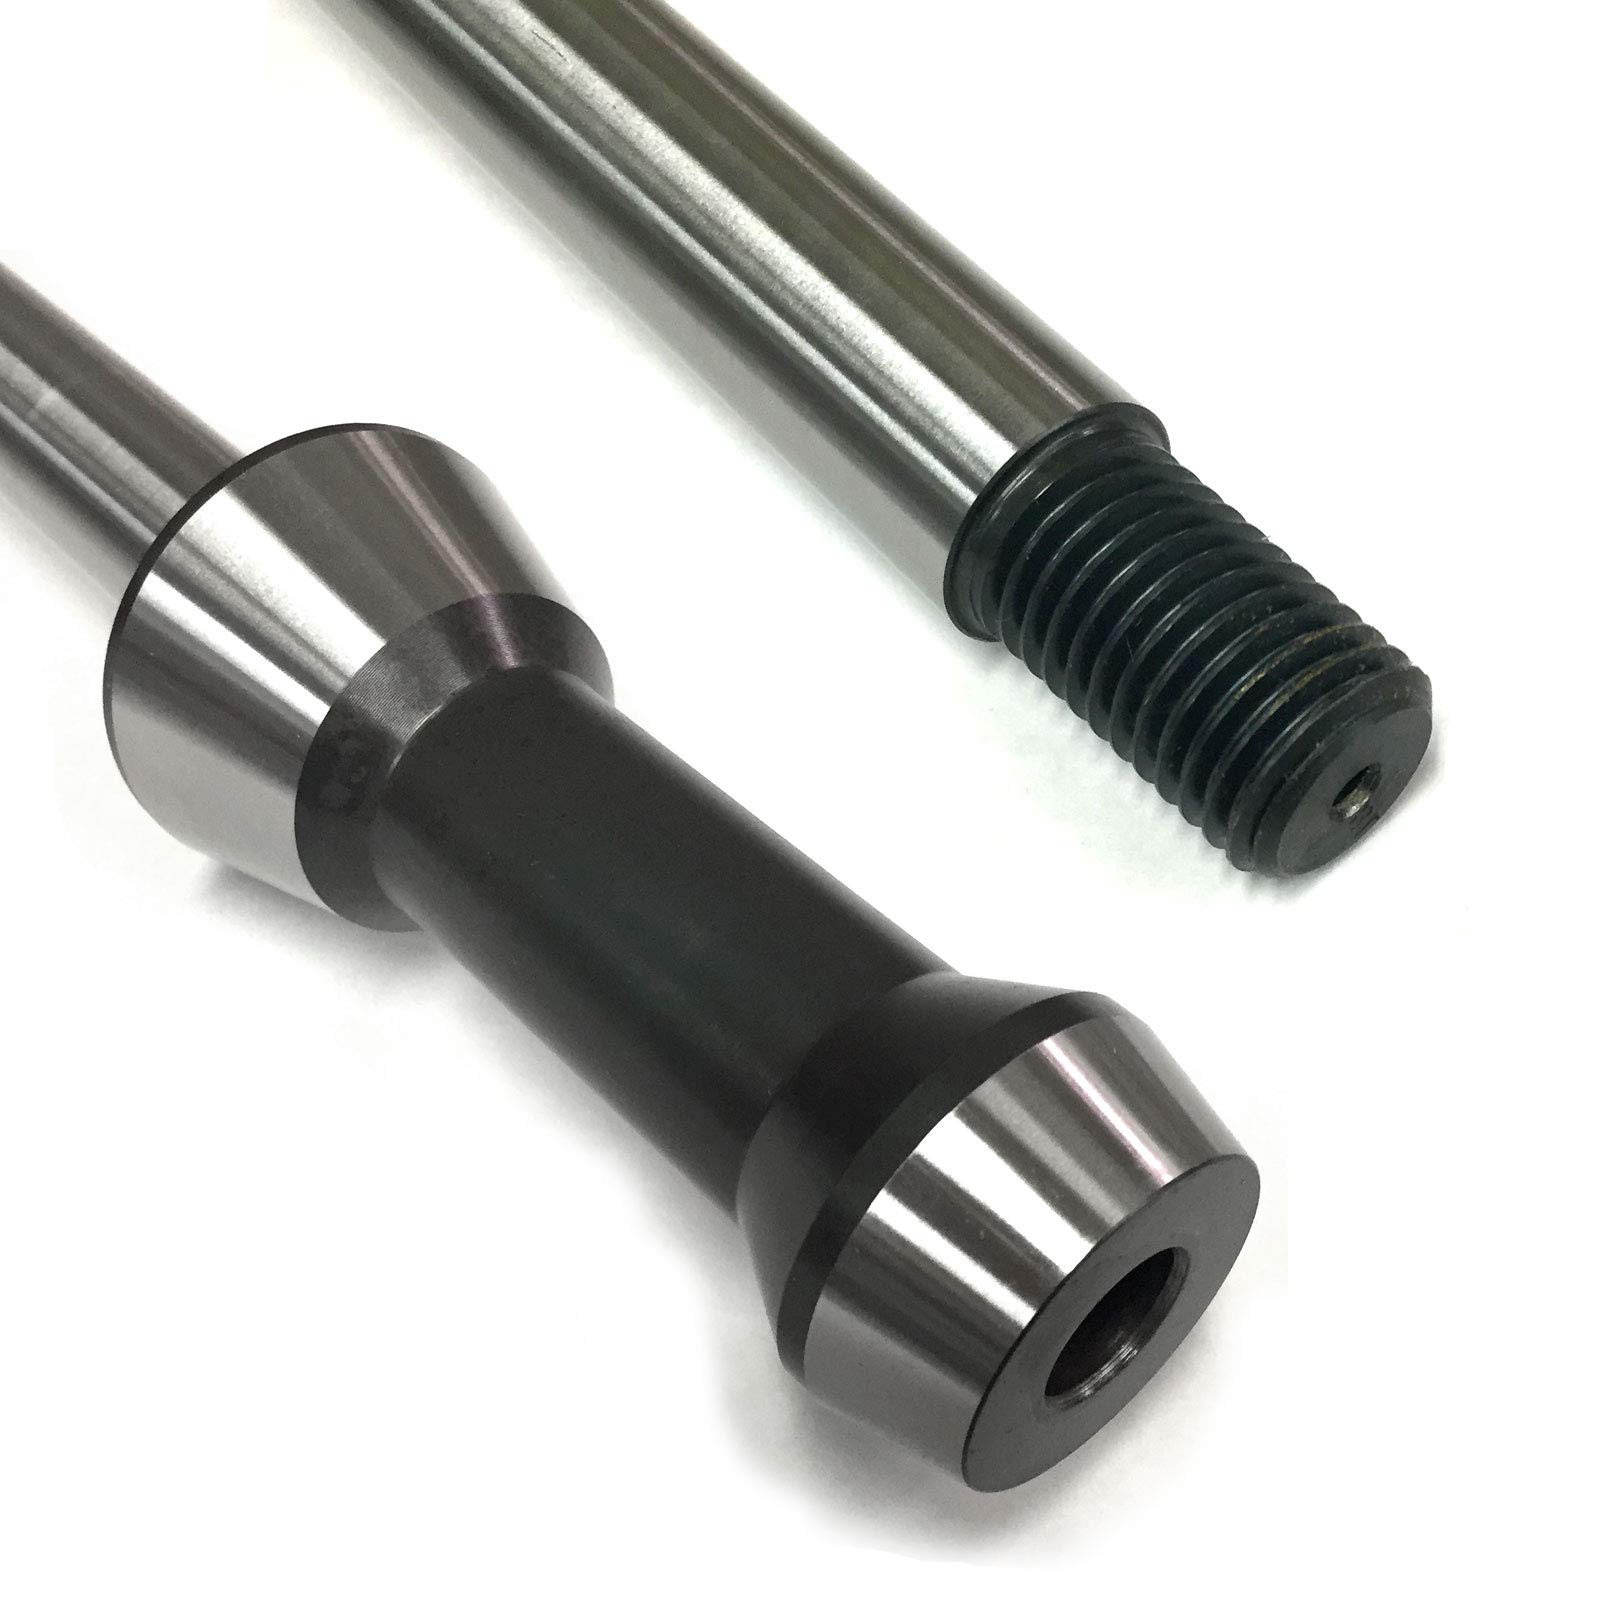 Ammco Brake Lathe 1'' Arbor Replacement Shaft by Generic (Image #2)